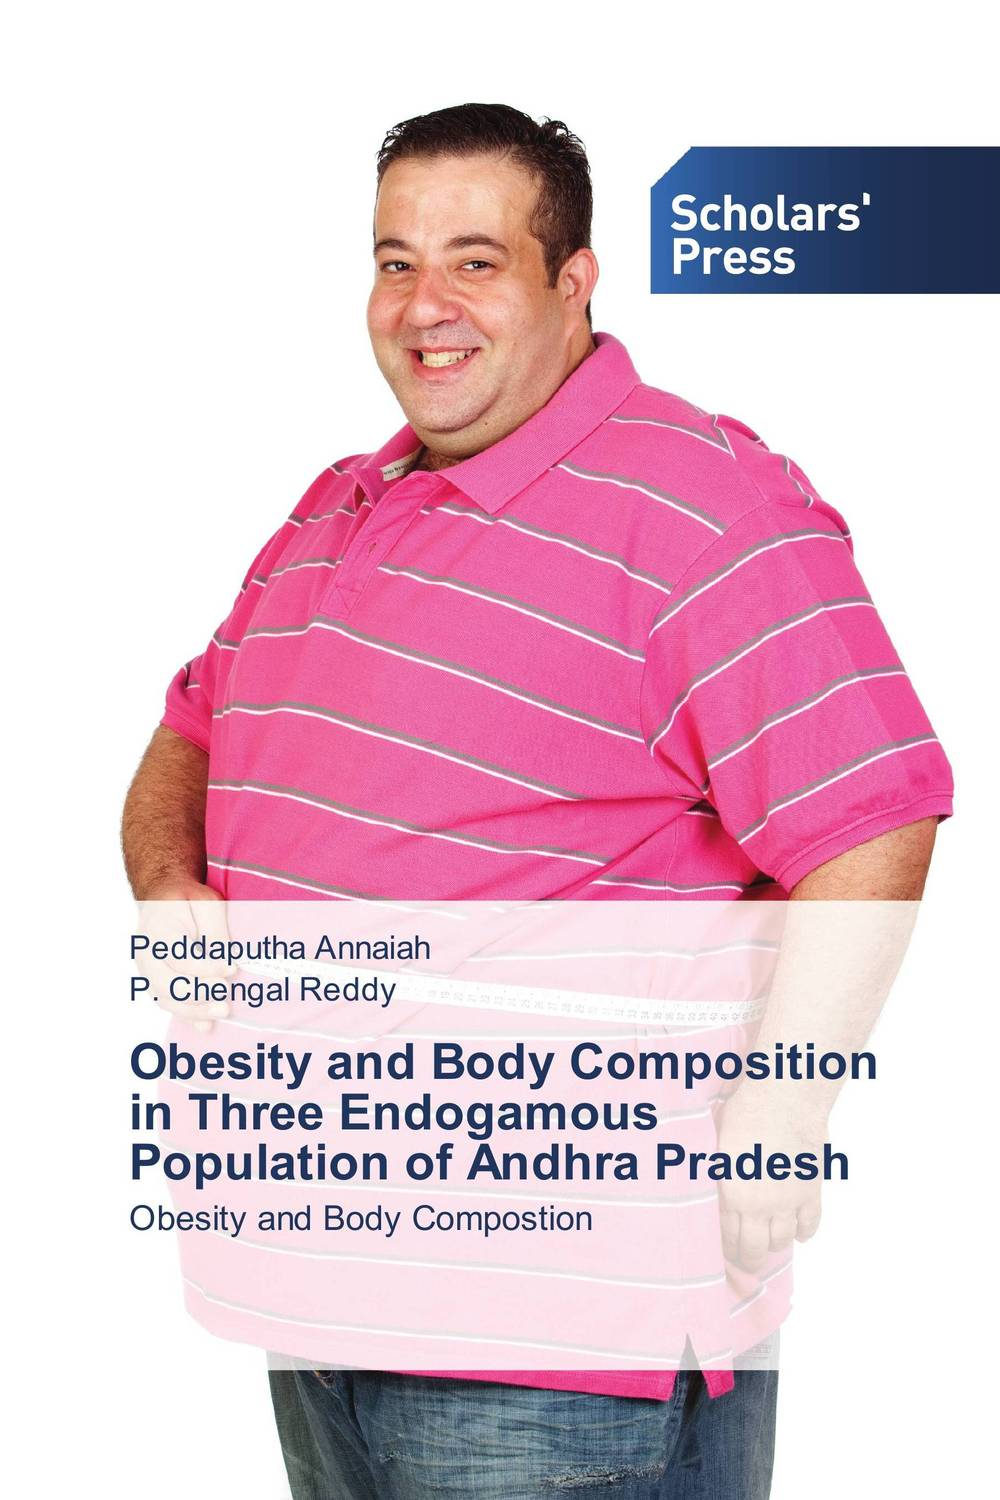 Obesity and Body Composition in Three Endogamous Population of Andhra Pradesh